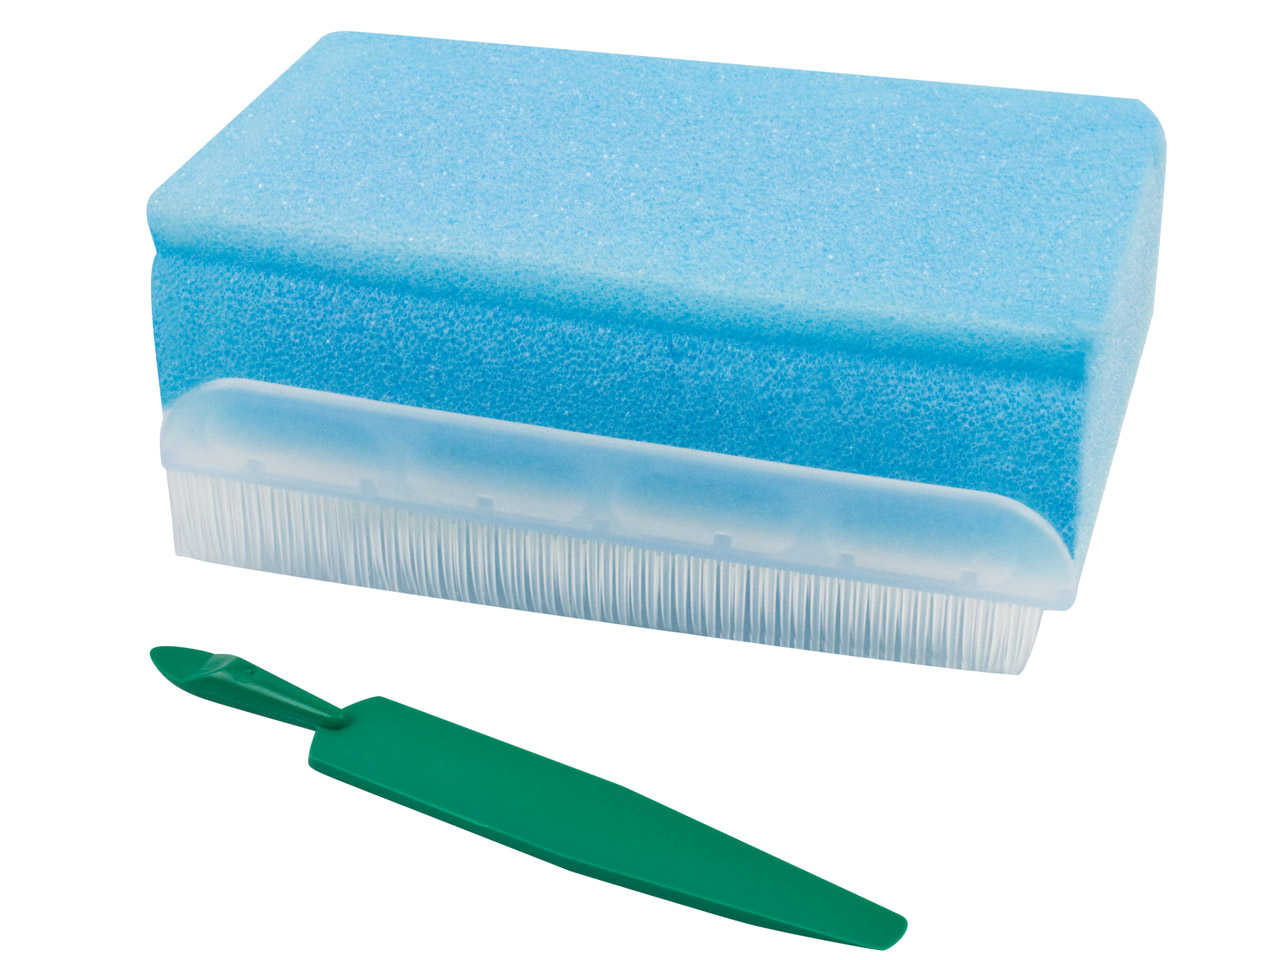 Replacement Sponge/brush For       Photopolymer Kit